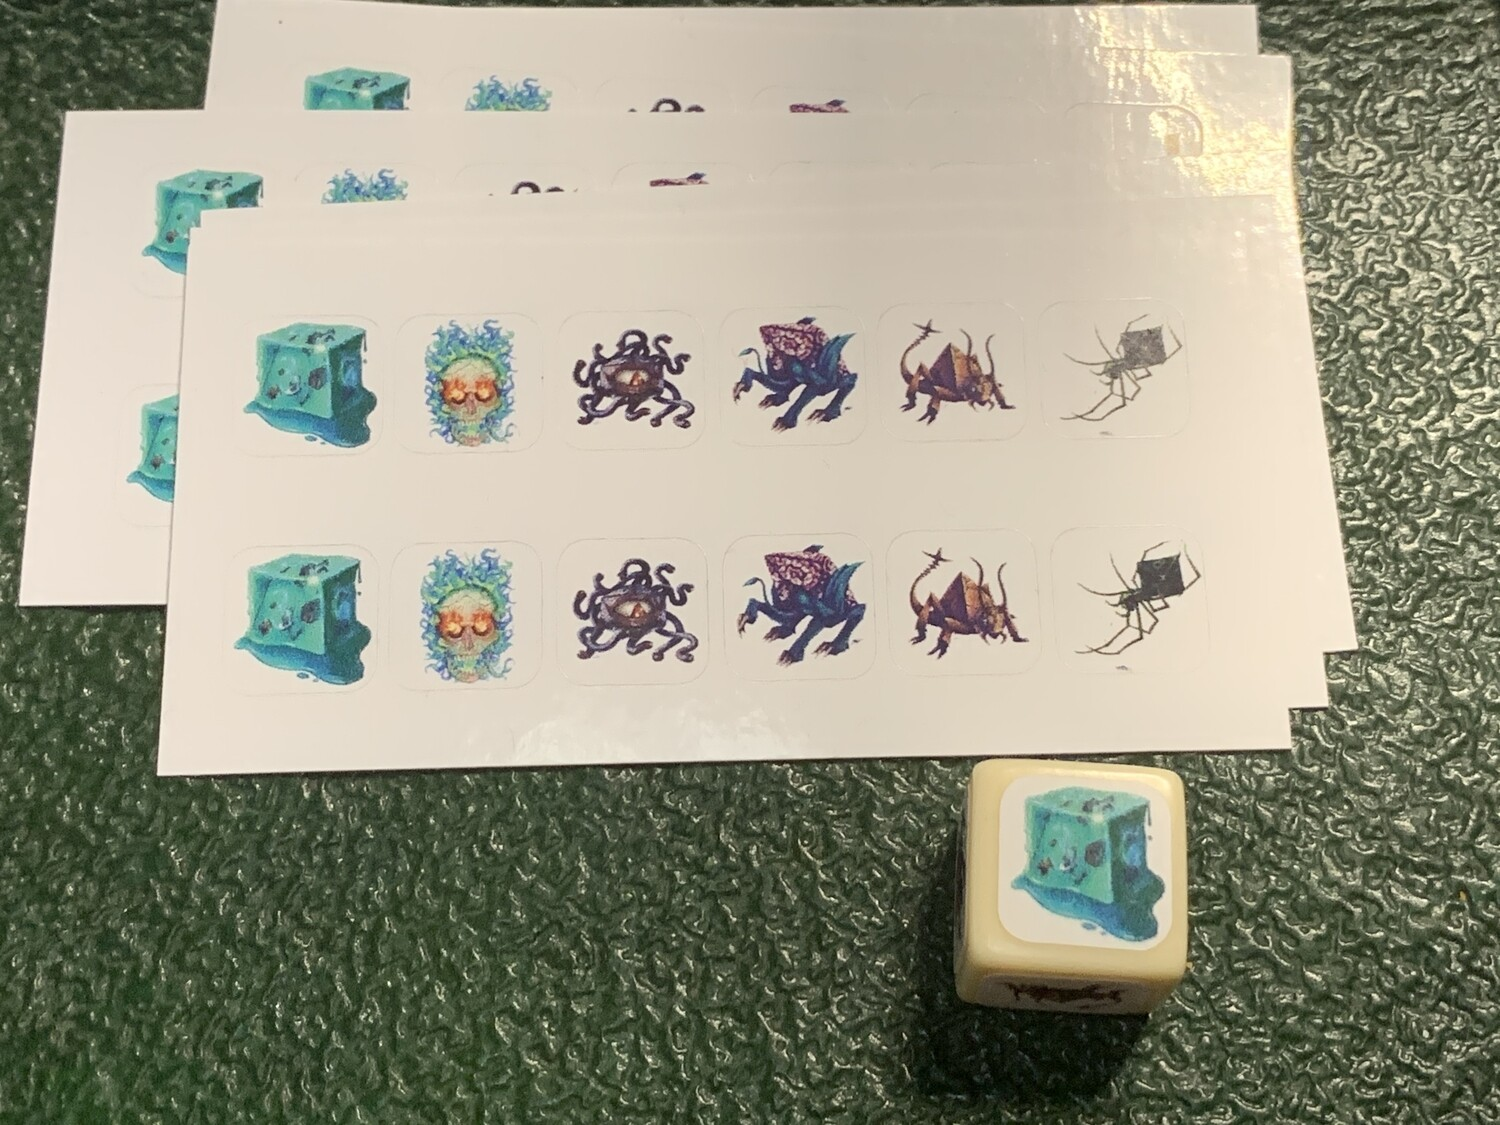 Custom Decals Stickers for D6 Dice - Tabletop RPG CCG Gaming